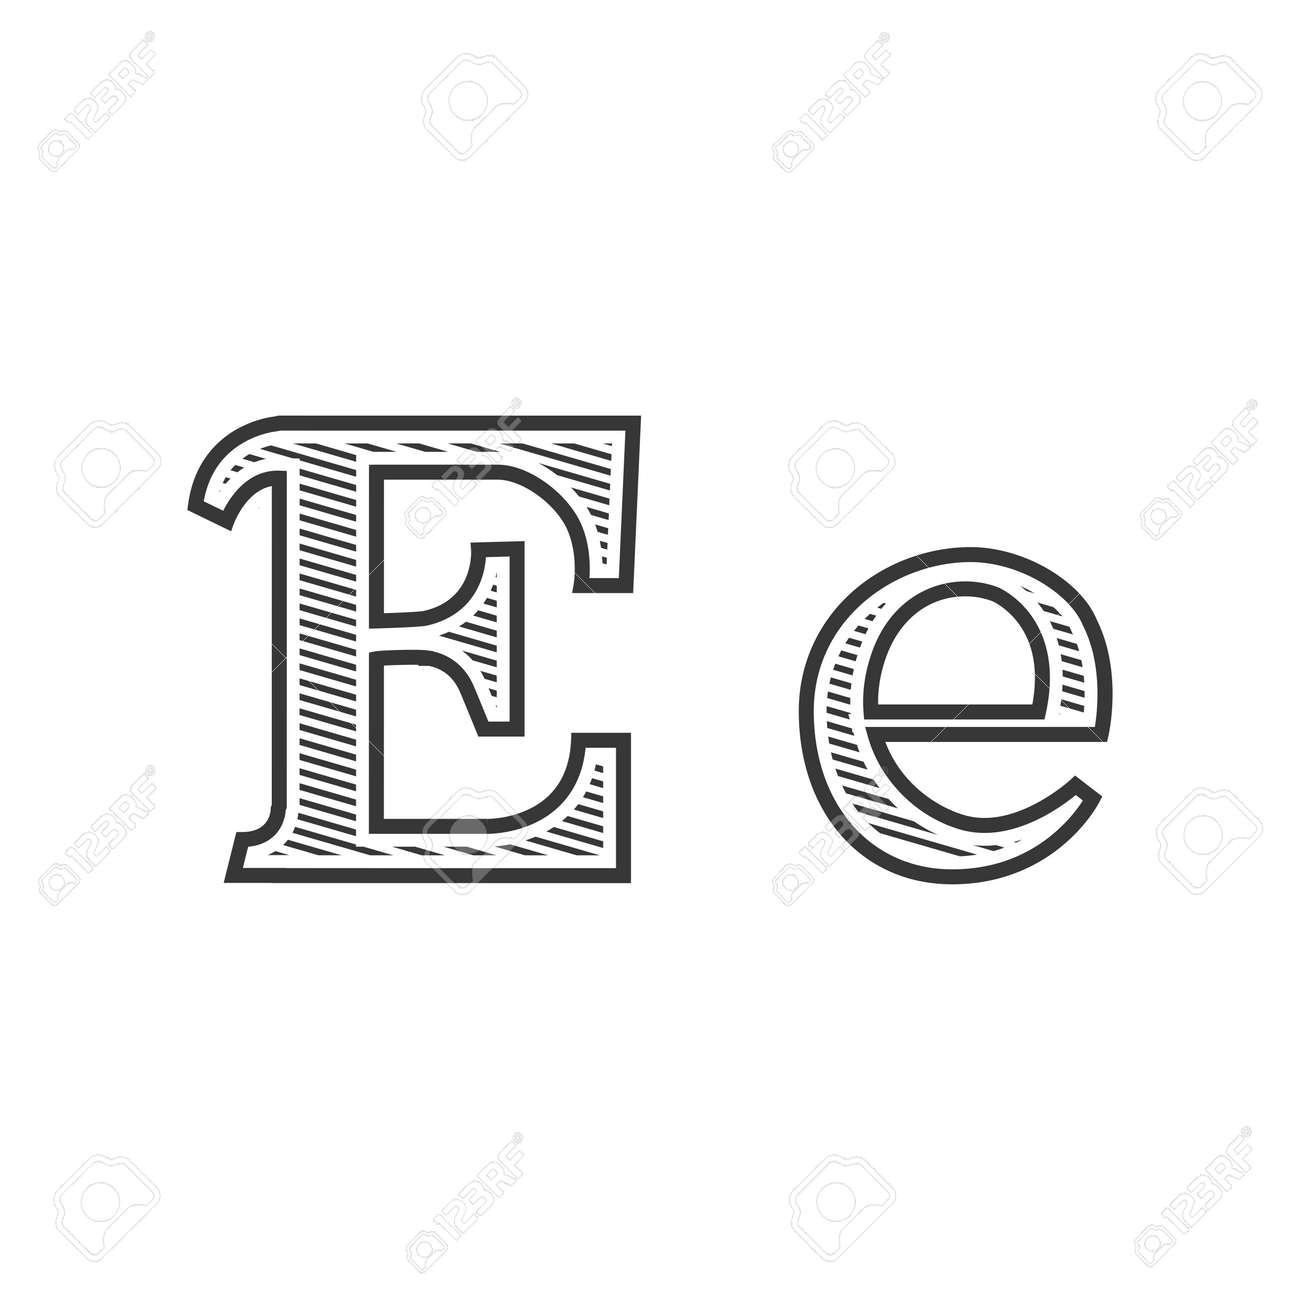 font tattoo engraving letter e black and white with shading royalty